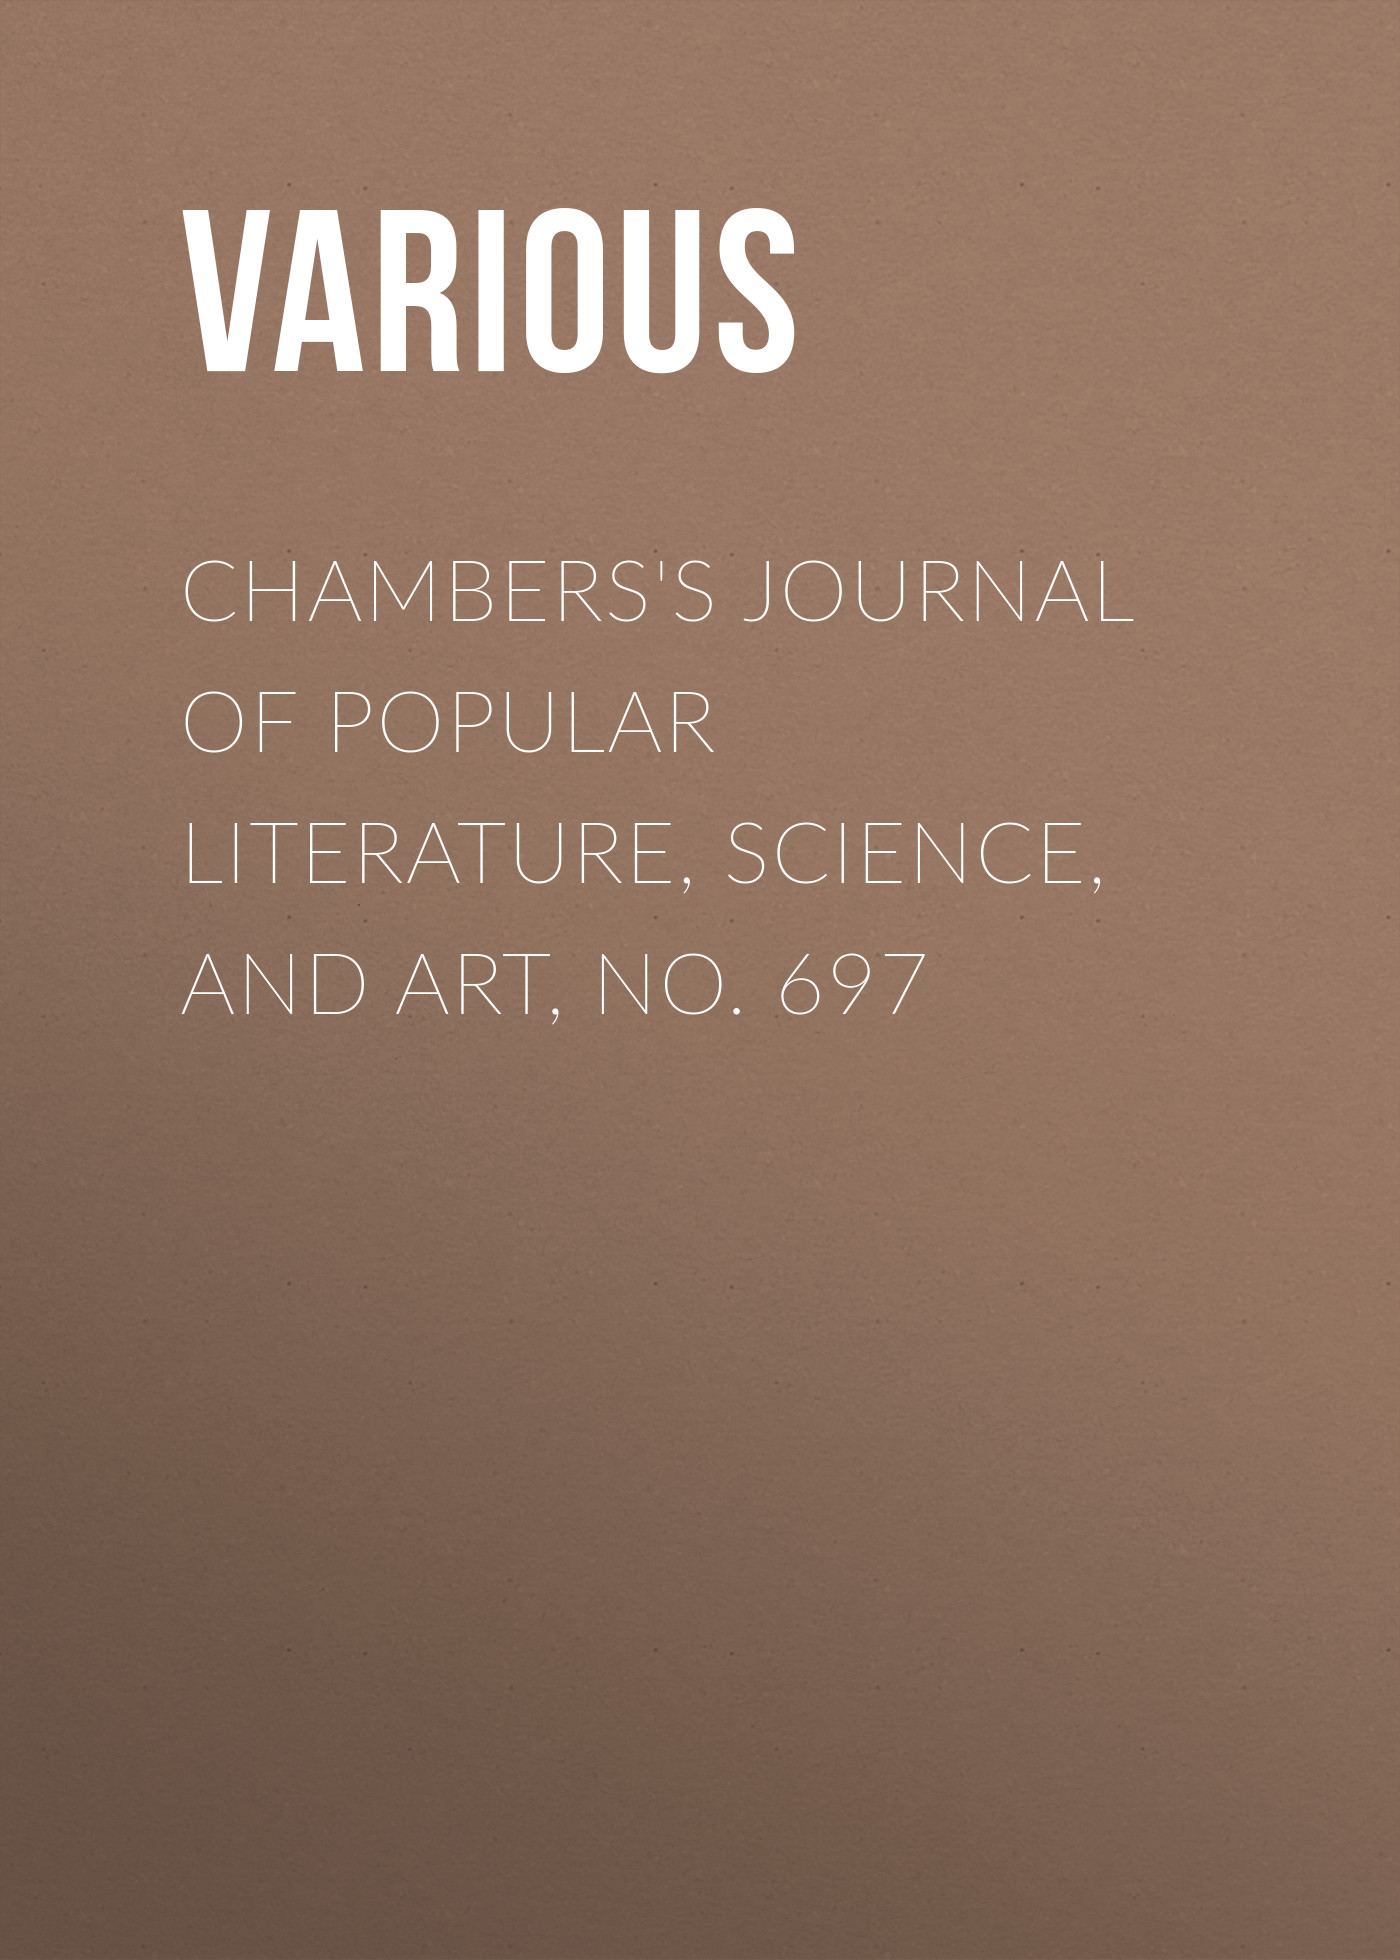 Various Chambers's Journal of Popular Literature, Science, and Art, No. 697 various chambers s journal of popular literature science and art no 699